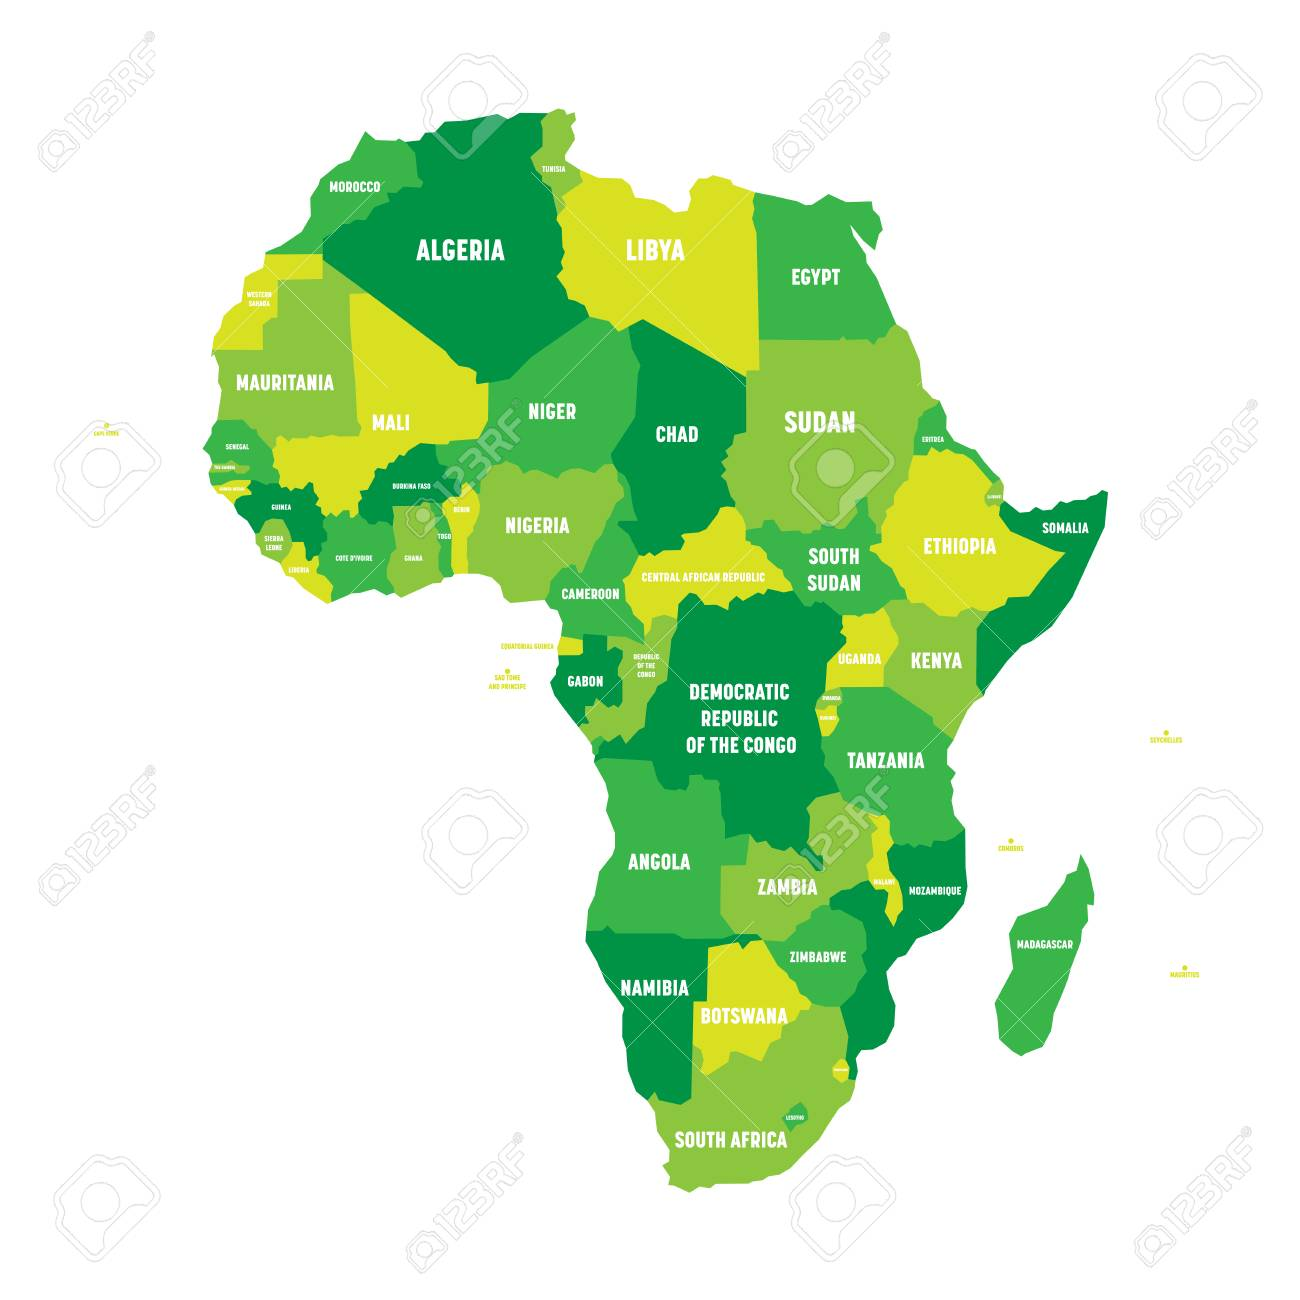 Political Map Of Africa In Four Shades Of Green With White Country